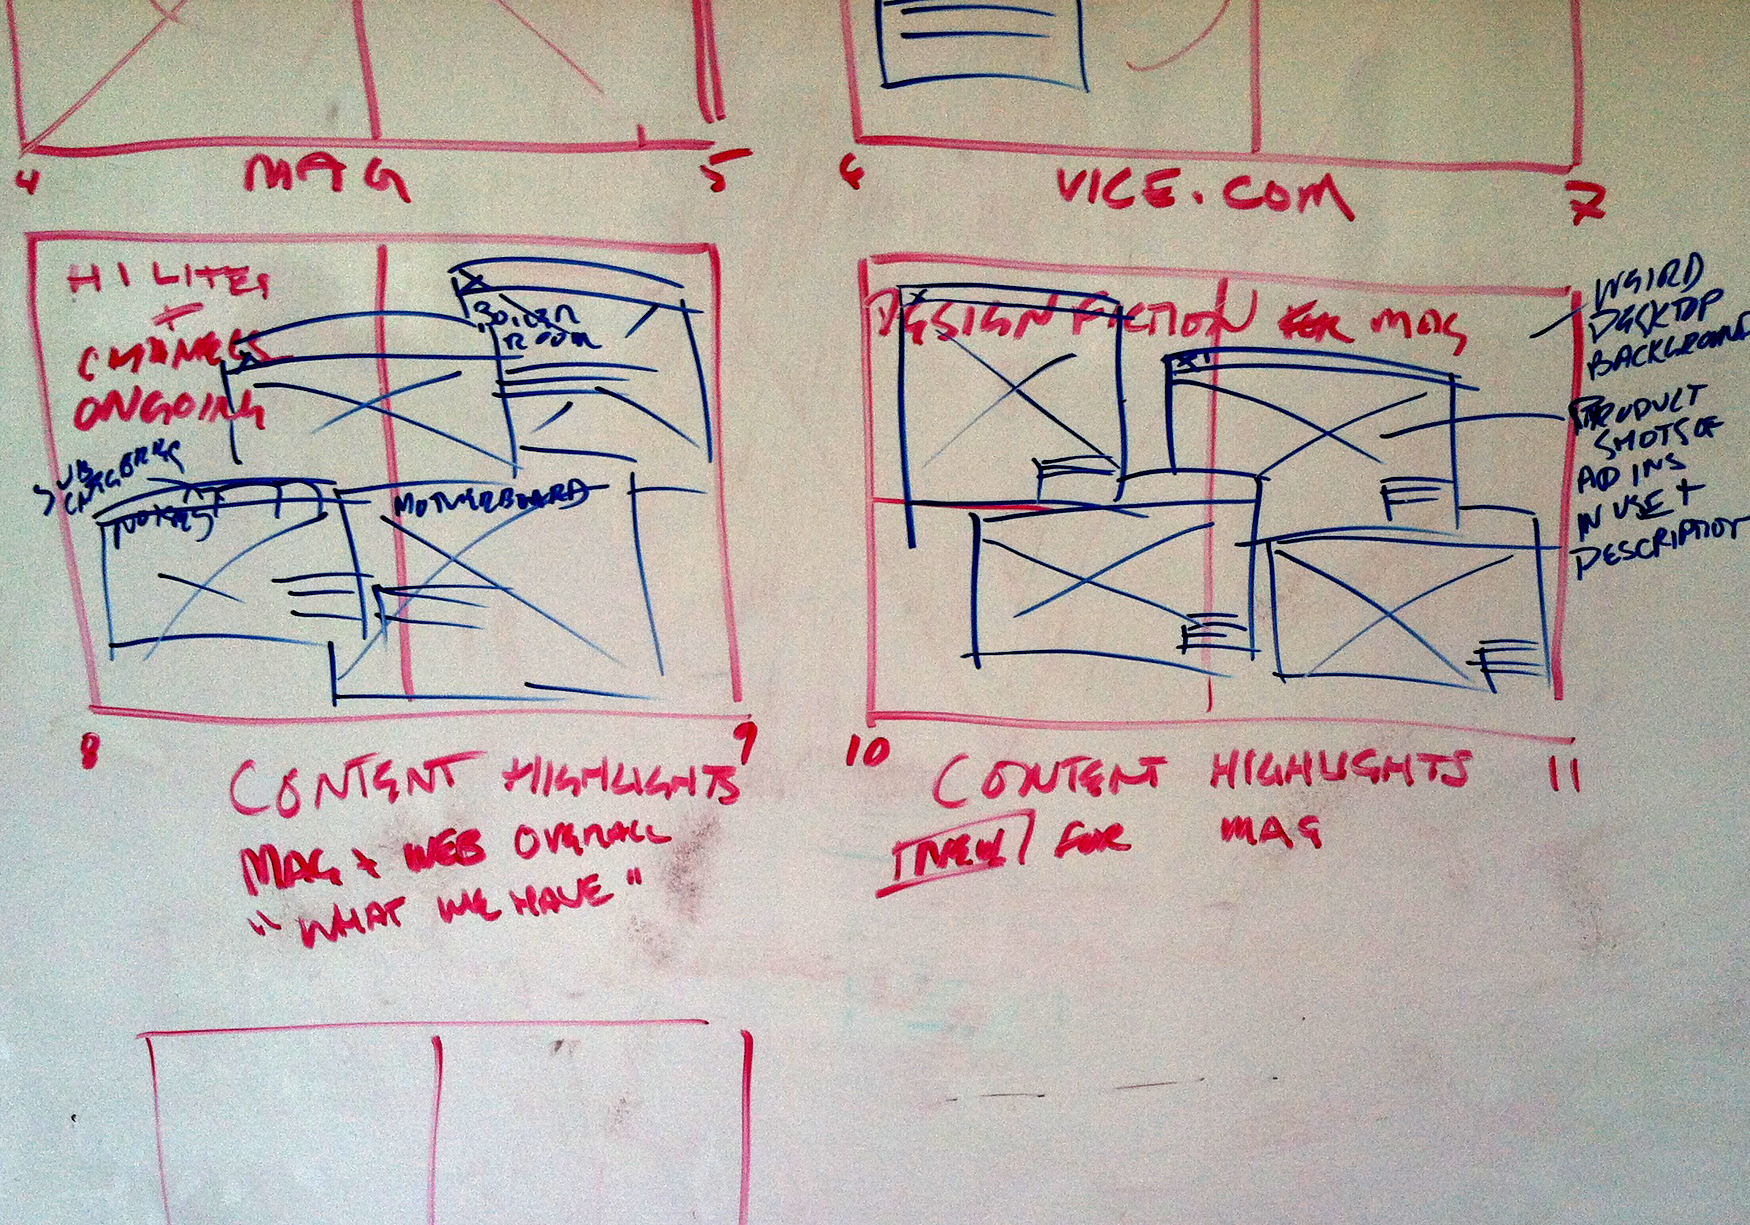 SKETCHING A DELIVERABLE